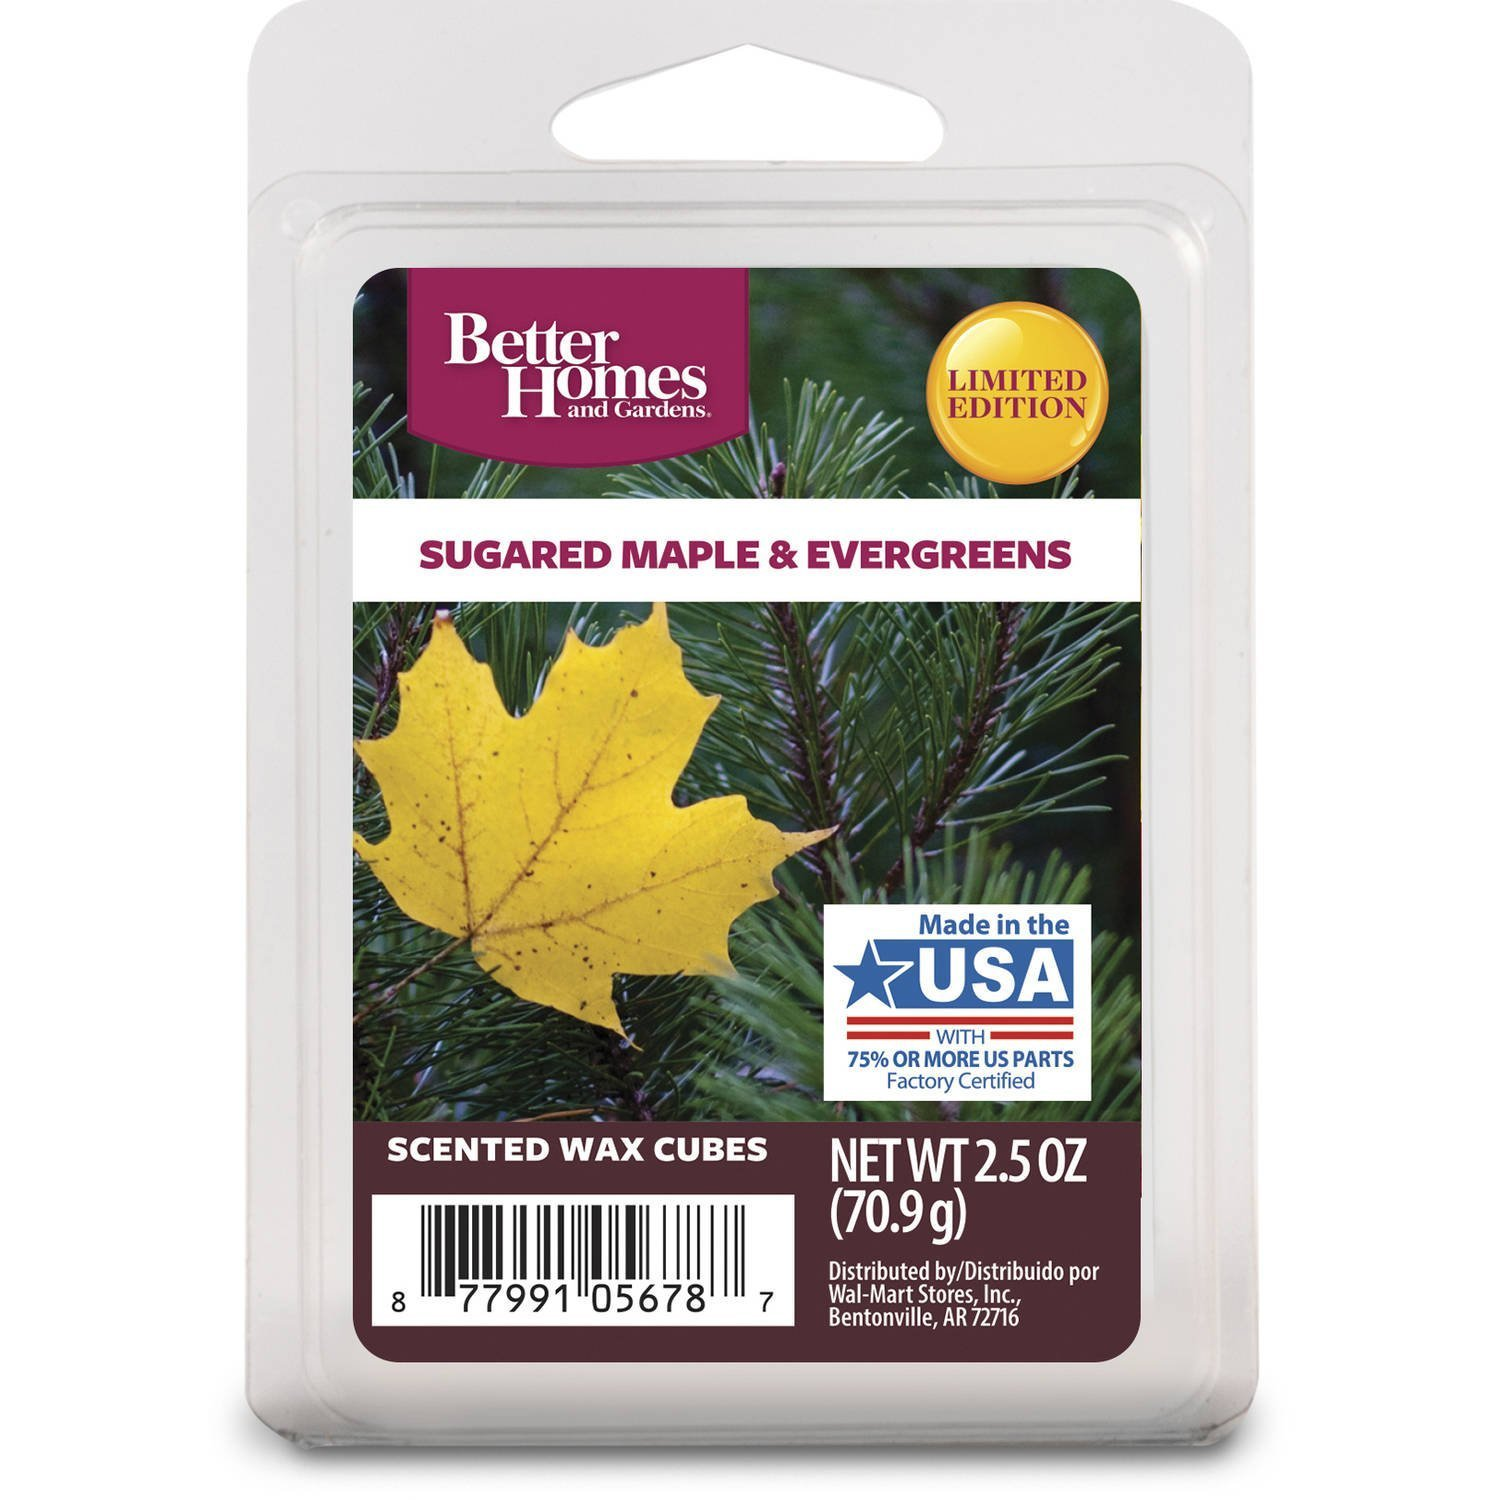 Better Homes and Gardens Sugared Maple and Evergreensワックスキューブ B01M34LYRJ